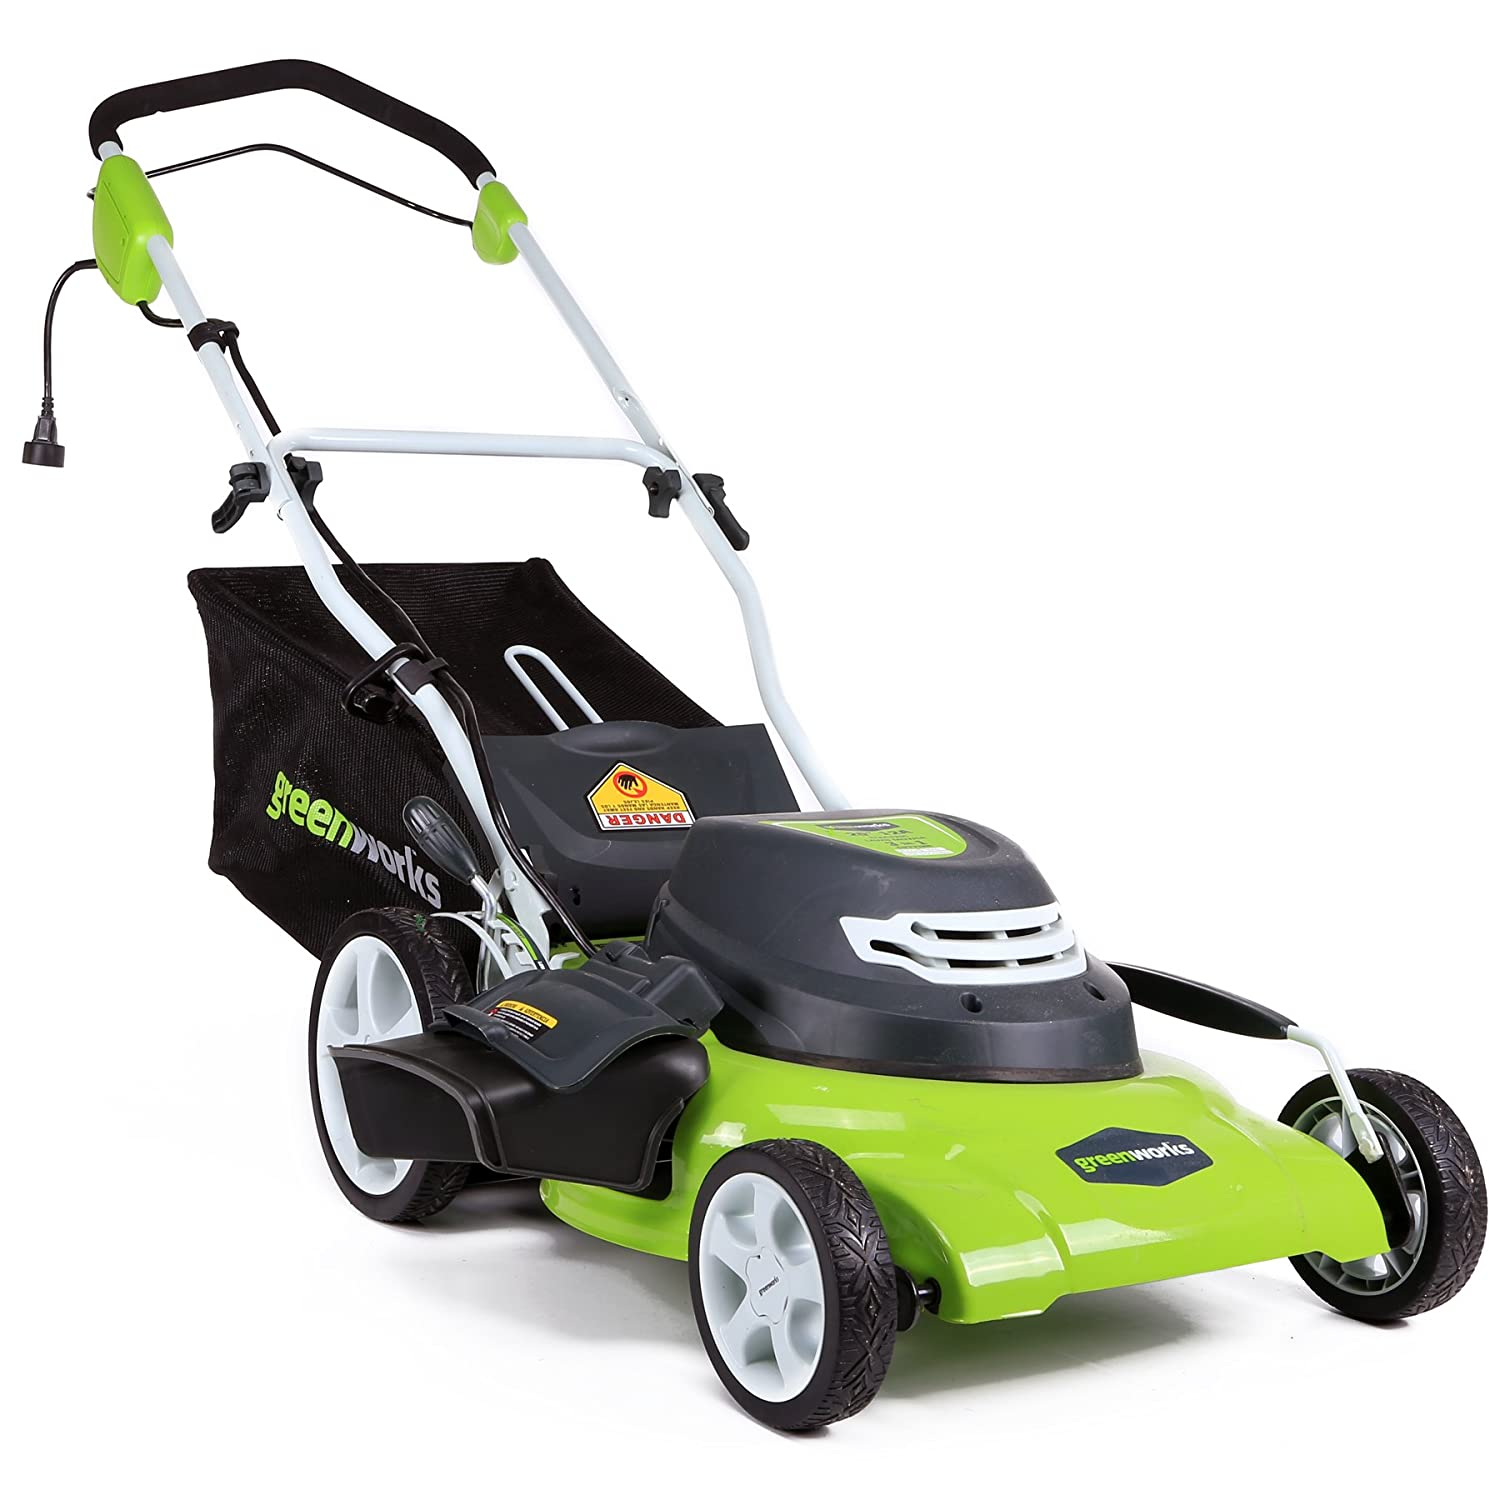 Greenworks 20Inch 3in1 12 Amp Electric Corded Lawn Mower 25022